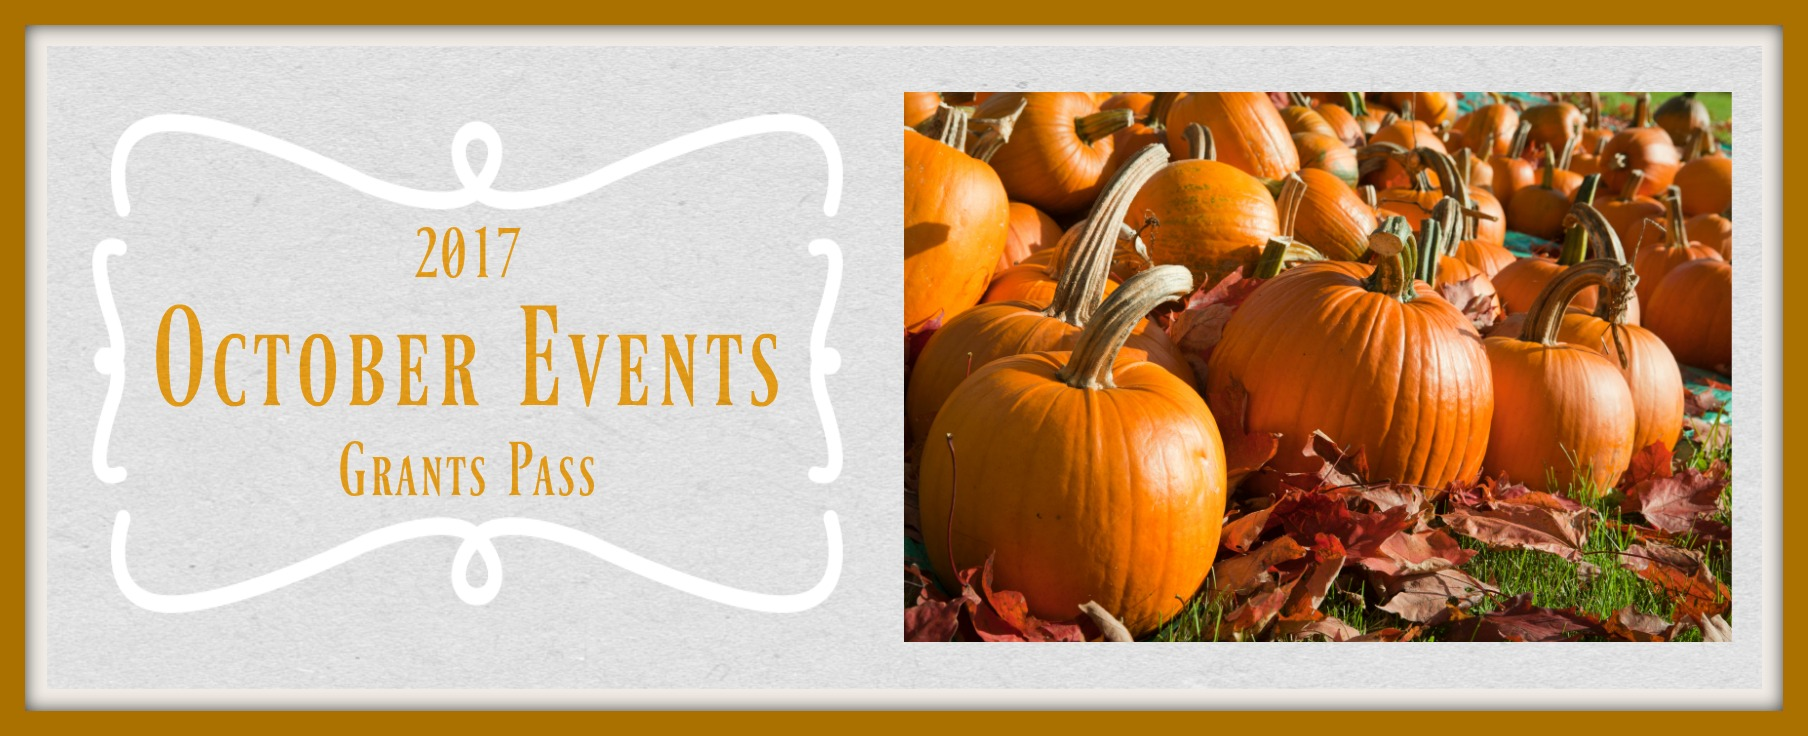 Upcoming Events October 2017. Grants Pass